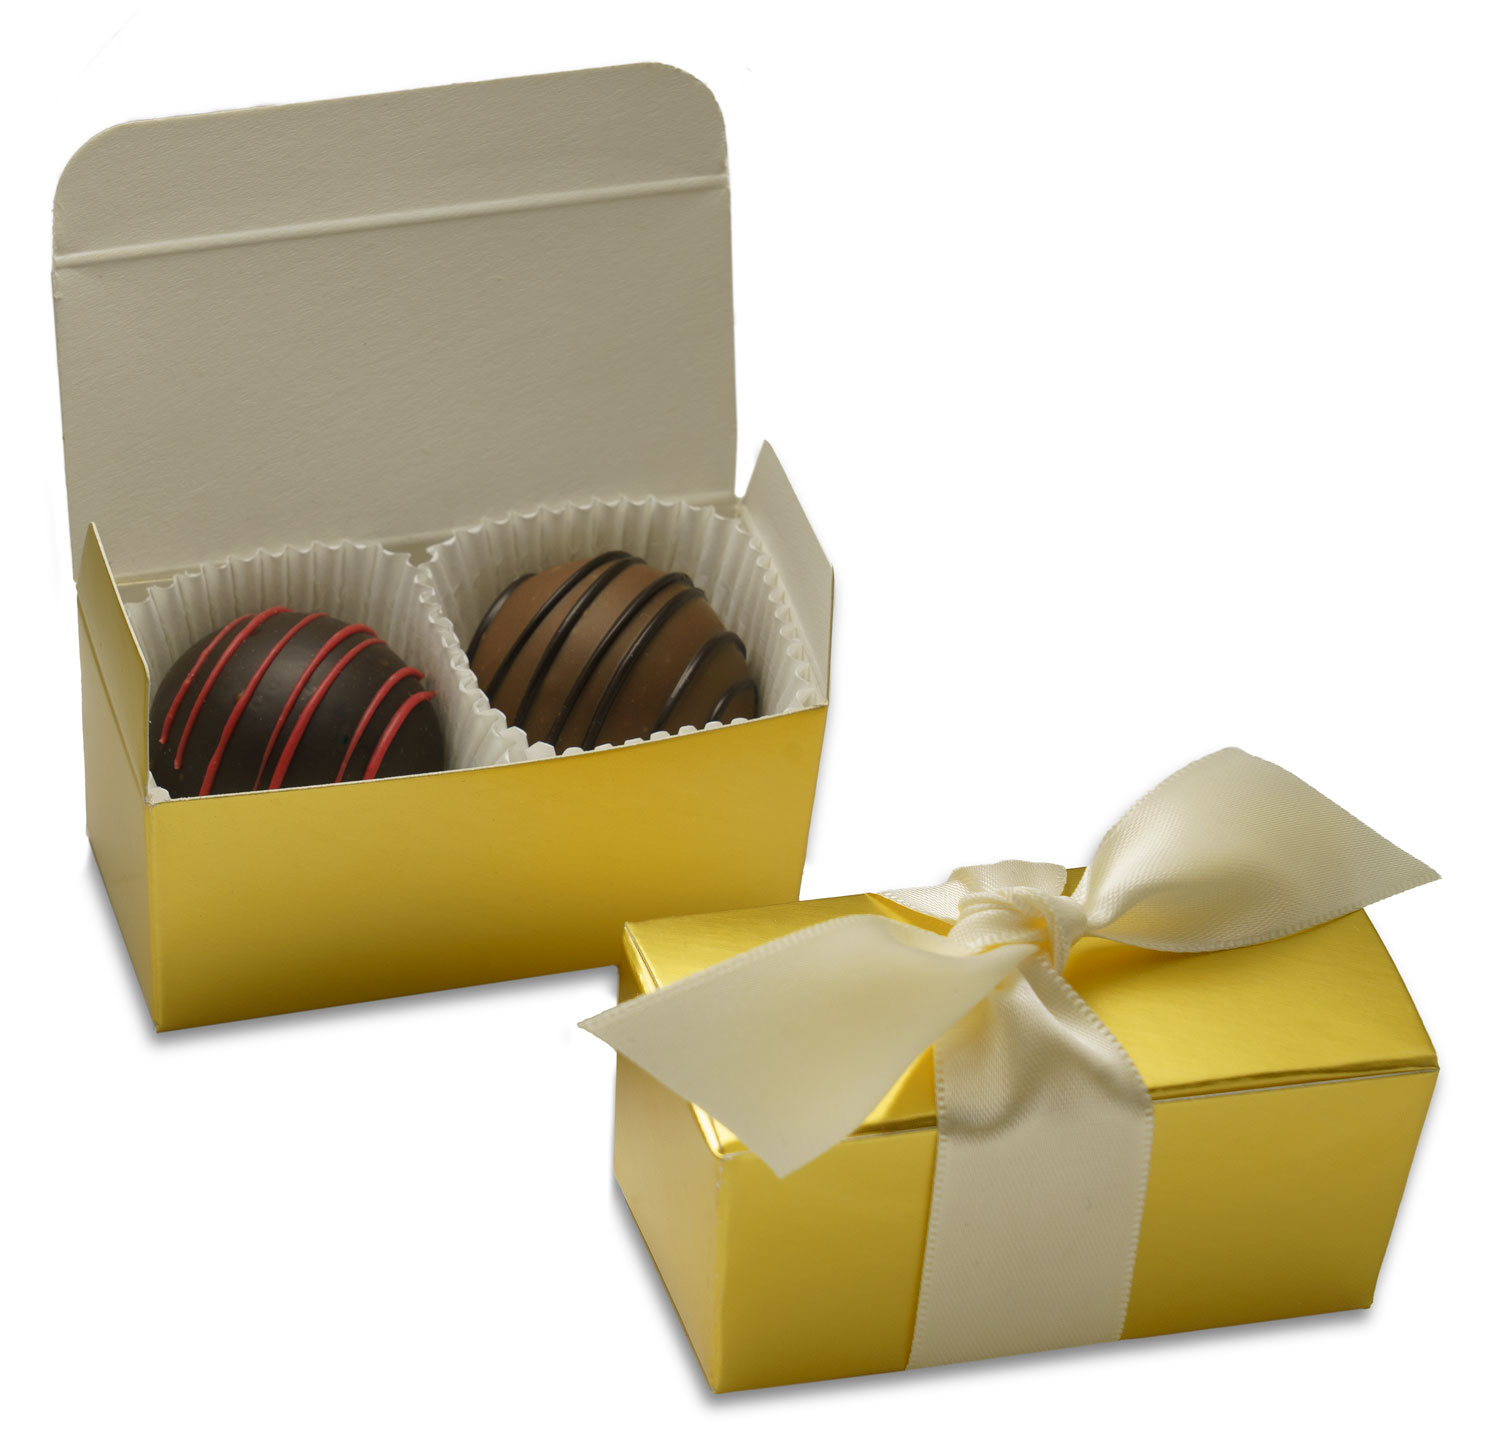 Gift or treat yourself to delicious chocolates from Sweet Designs of Lakewood this season